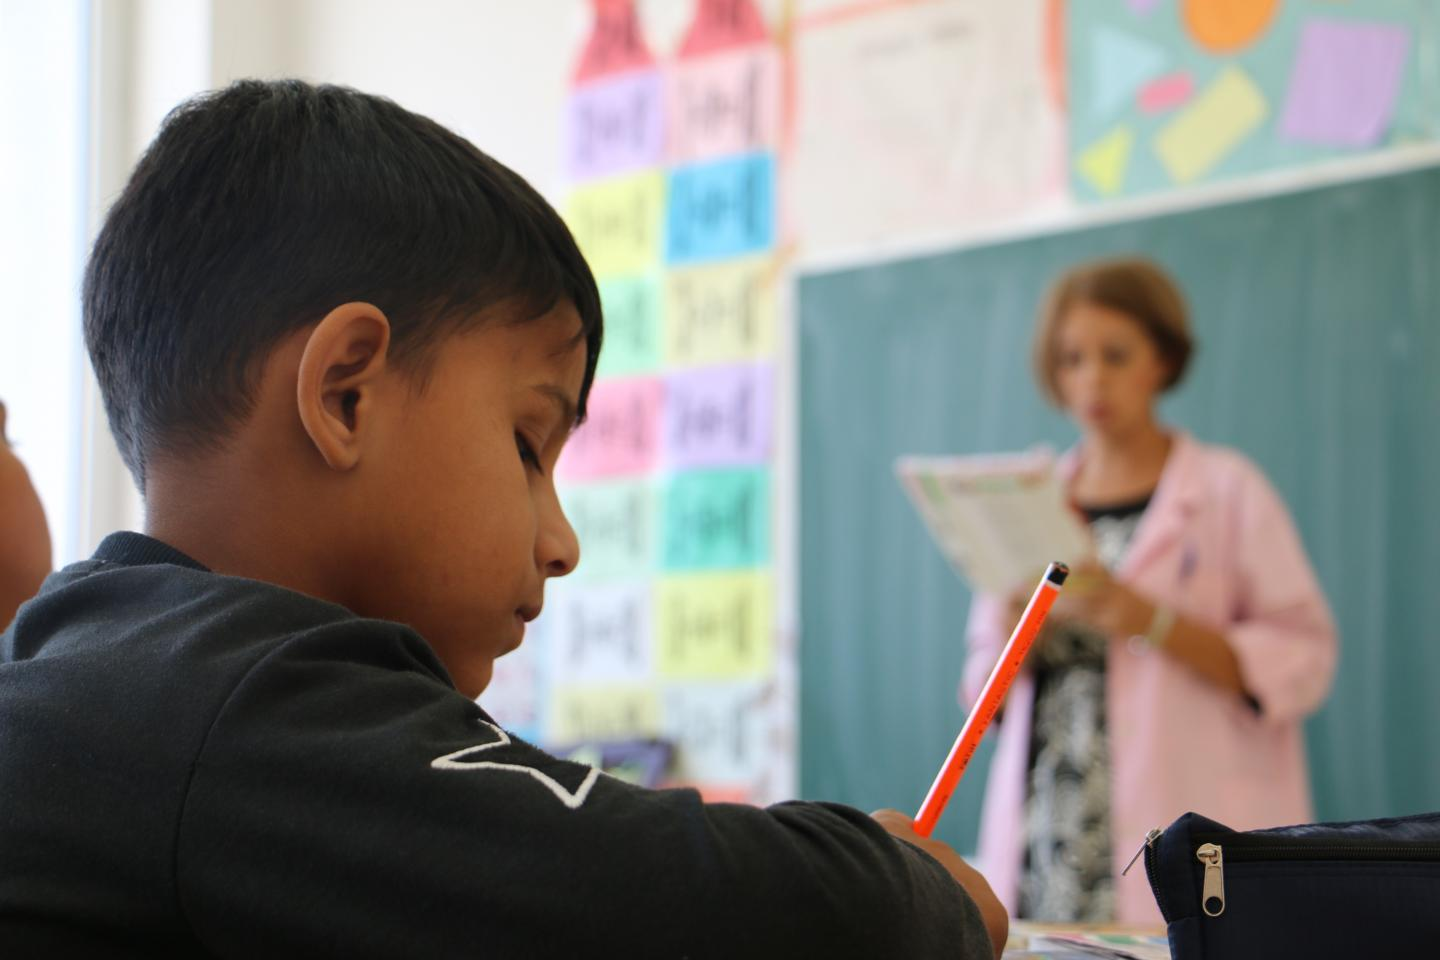 a child writing down notes from the teacher's lesson as she speaks in a classroom